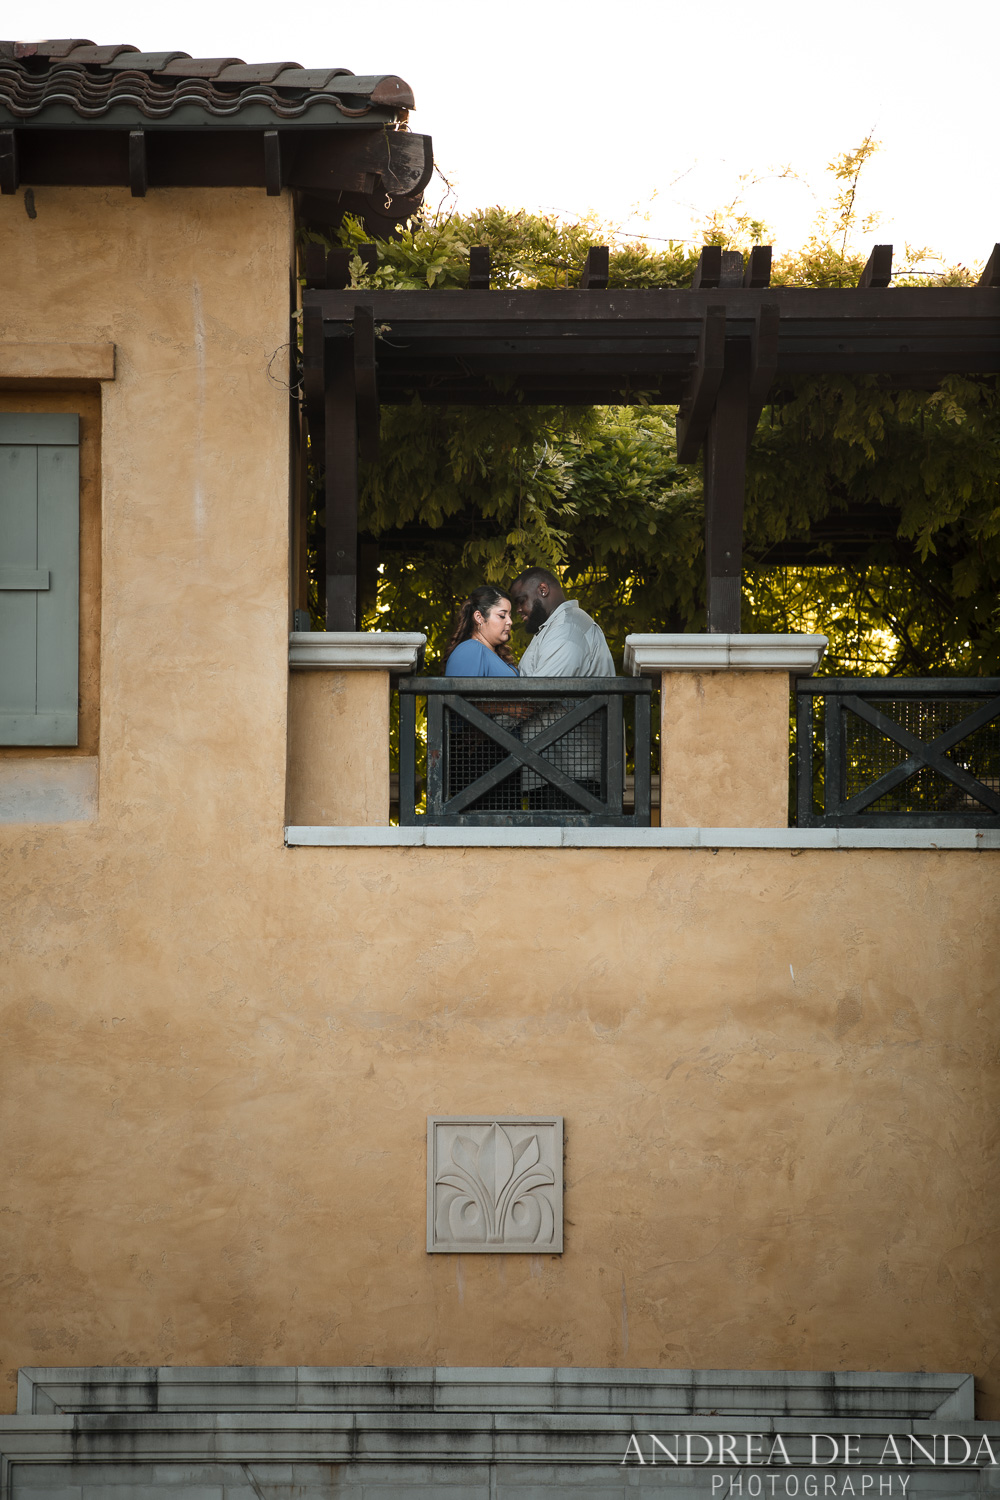 Evergreen-California-Engagement-session-Andrea-de-Anda-photography_-9.jpg